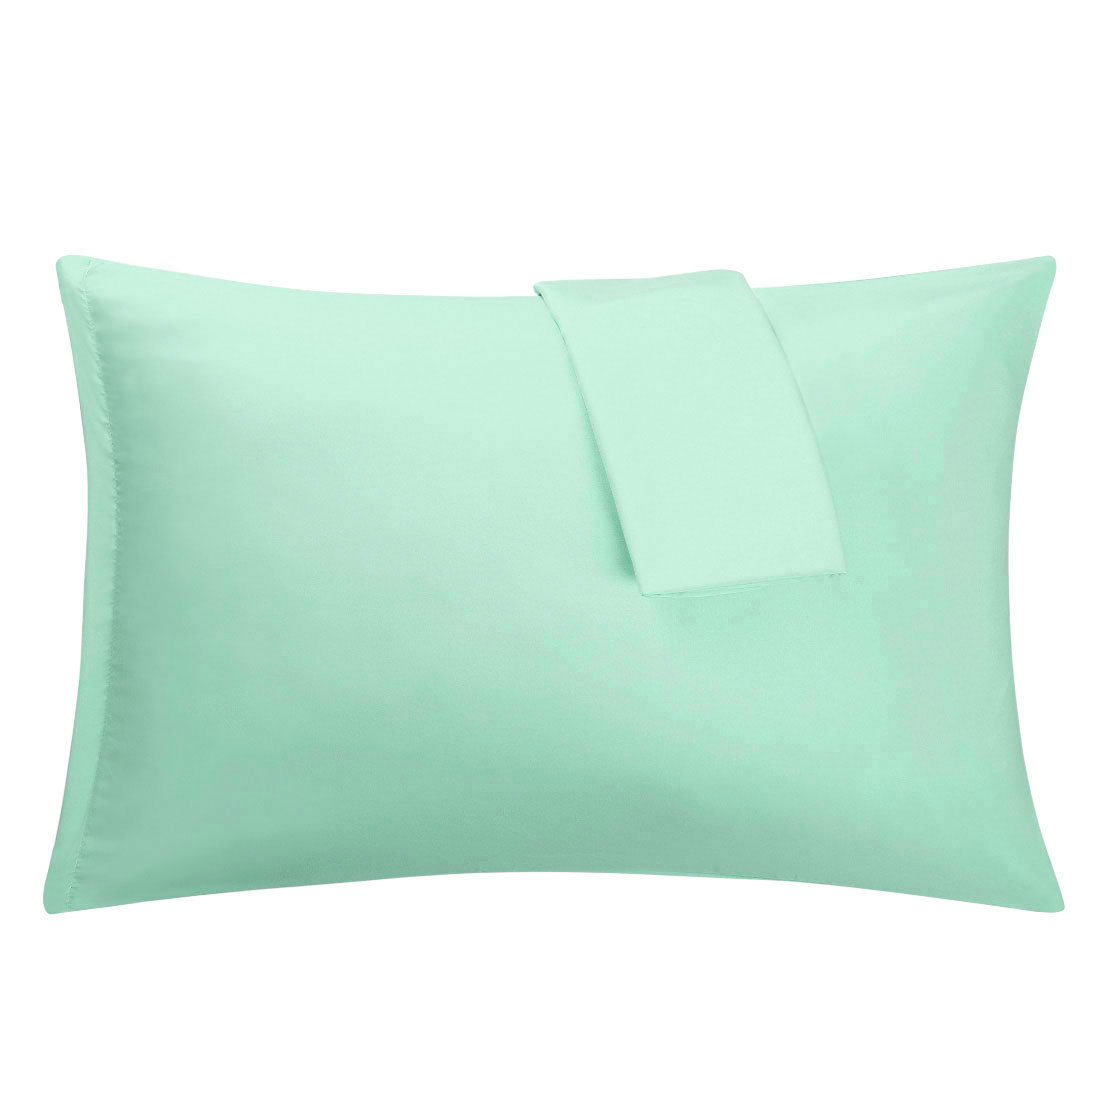 Spa Blue Pillowcases Soft Microfiber Pillow Case Cover with Zipper Queen, 2 Pack